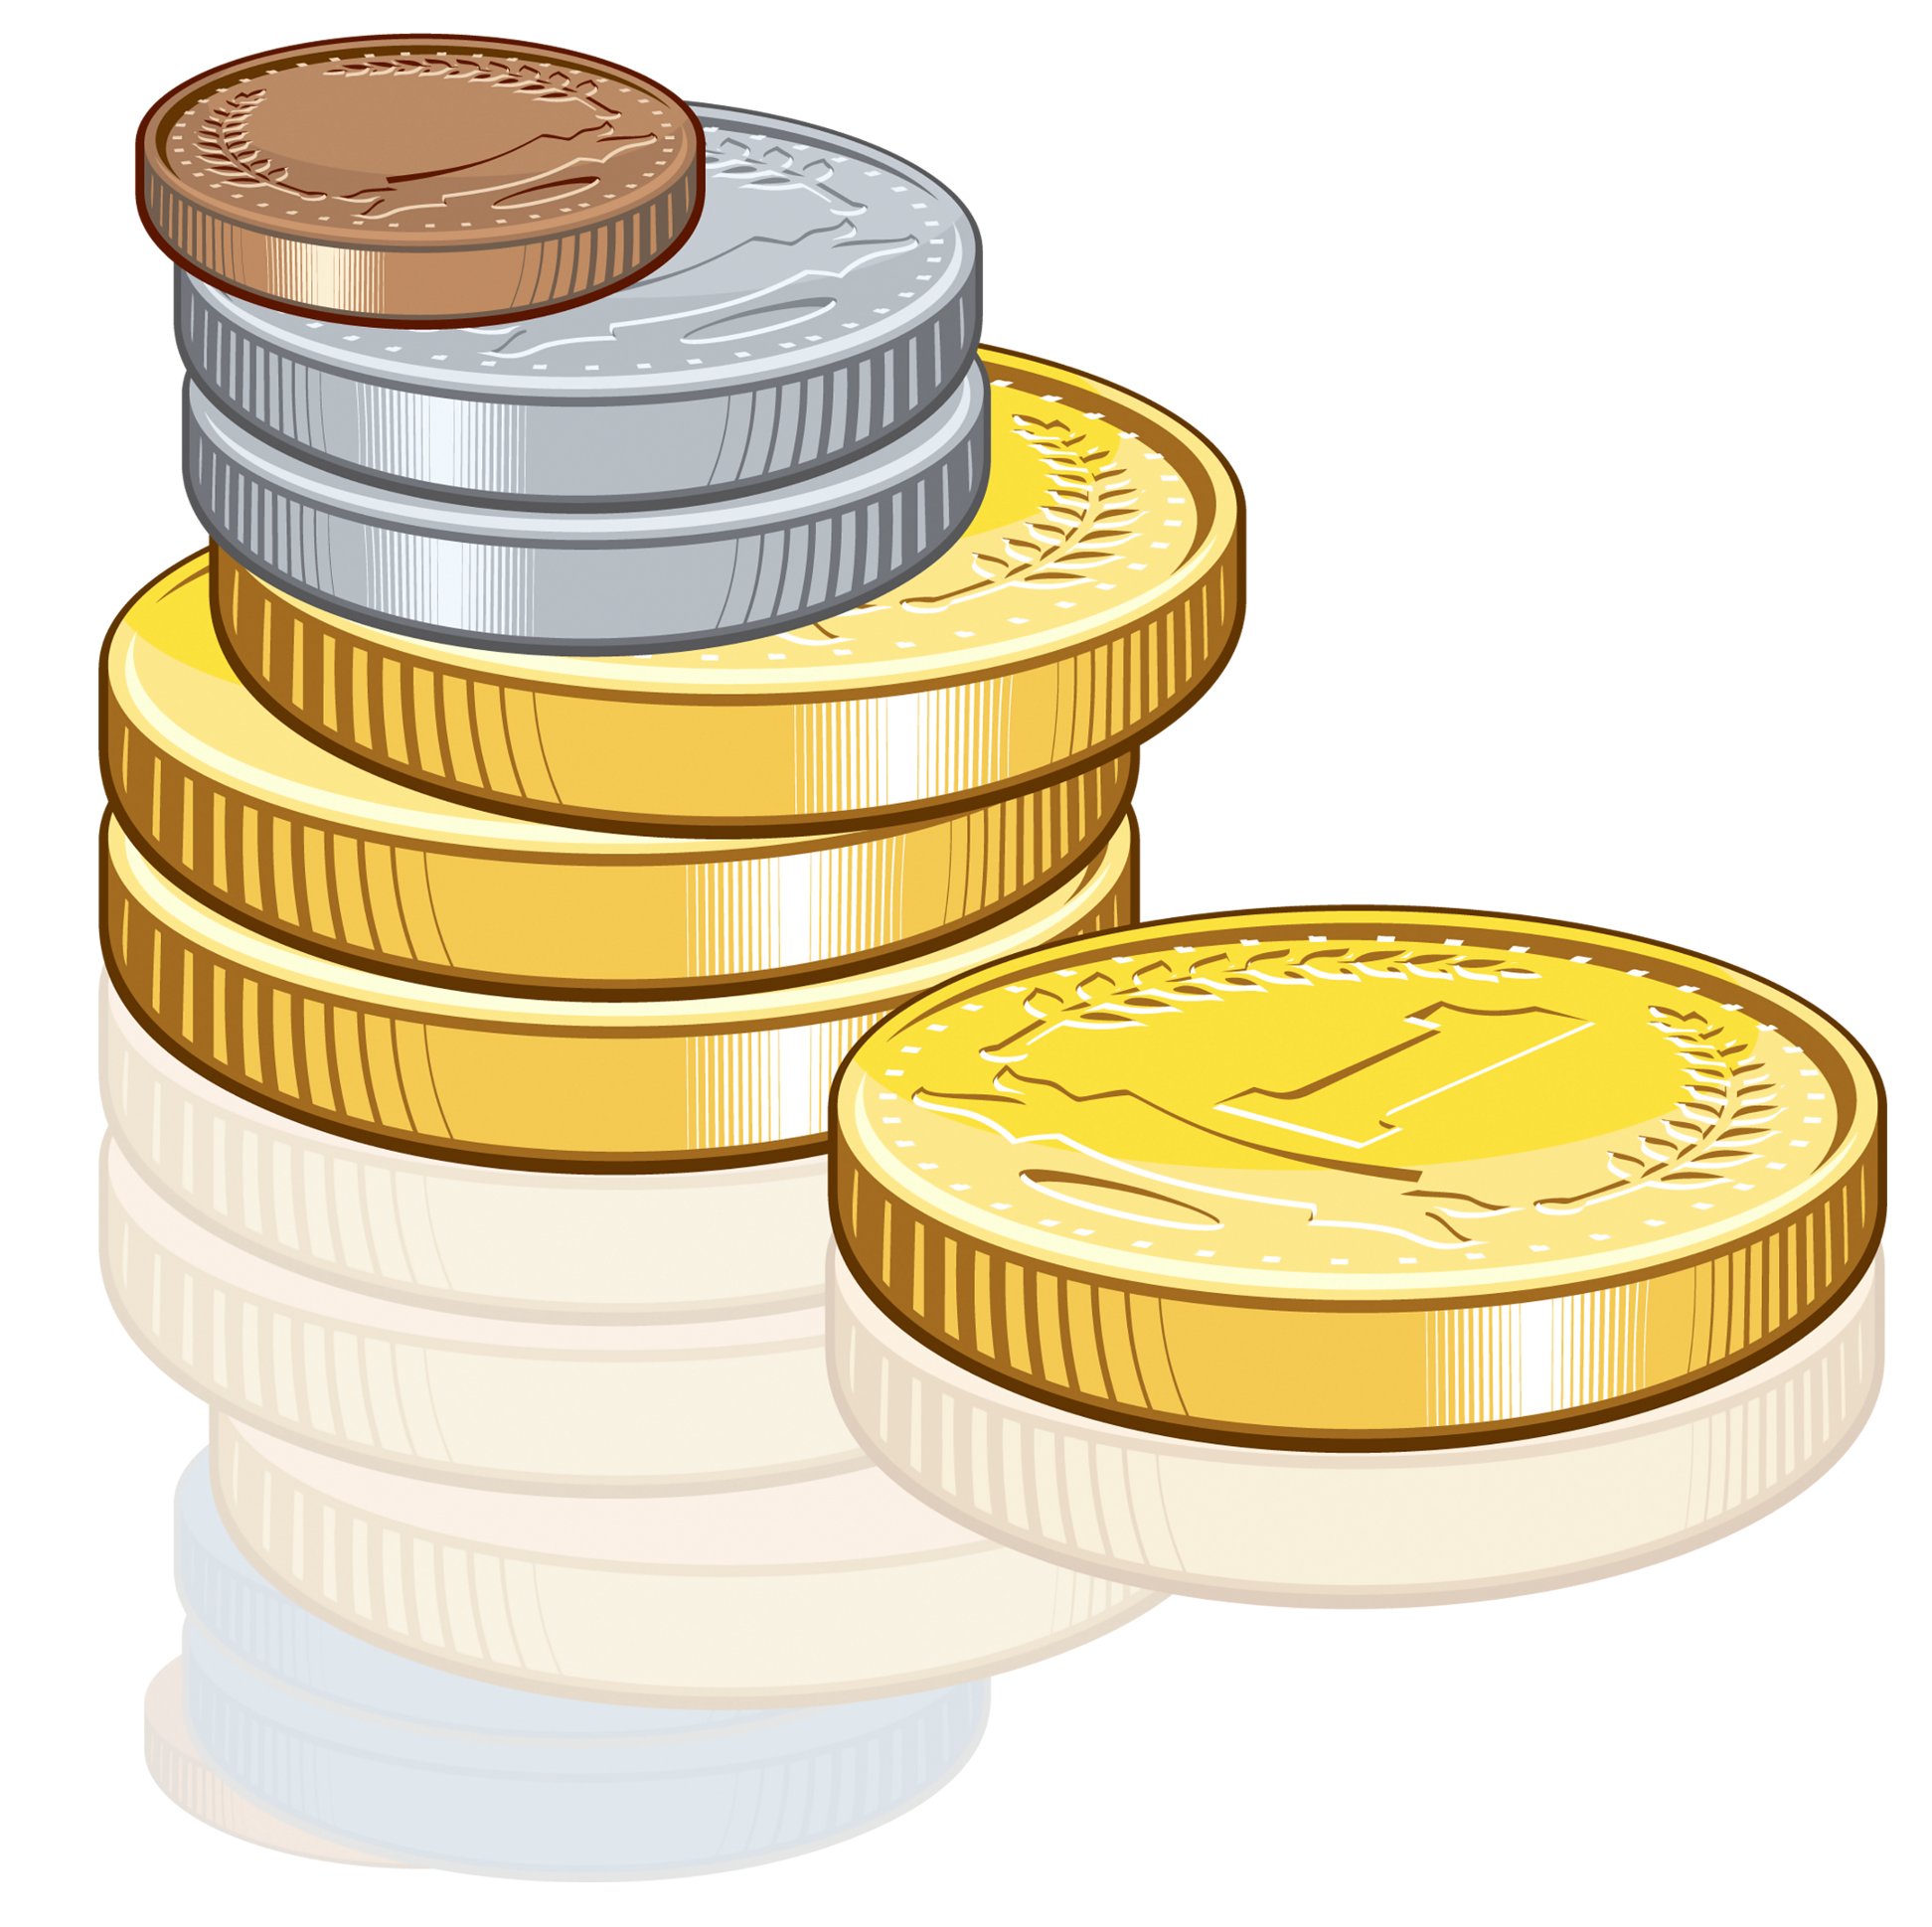 Money clipart pmg image library library Coins PNG Clipart | Gallery Yopriceville - High-Quality Images and ... image library library